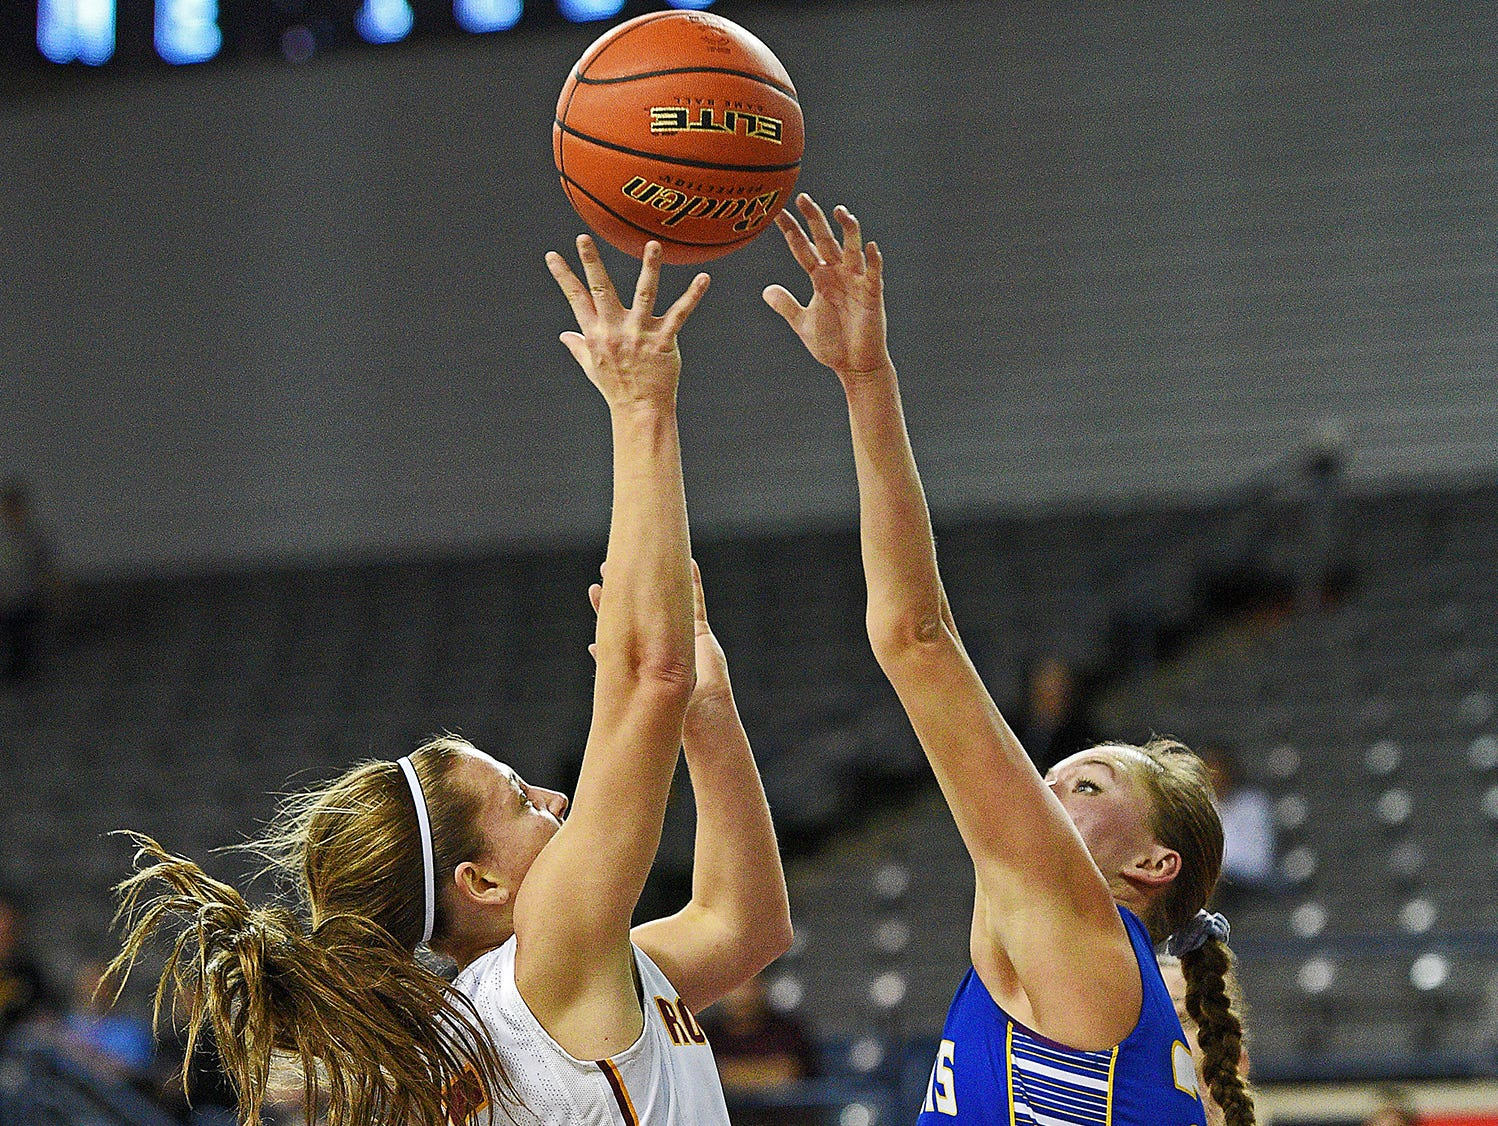 Roosevelt's Taylor Bonestroo (5) goes up for a shot as O'Gorman's Kendyl Kreber (24) defends during a 2017 SDHSAA Class AA State Girls Basketball quarterfinal game Thursday, March 16, 2017, at Rushmore Plaza Civic Center in Rapid City. O'Gorman beat Roosevelt 37-33.